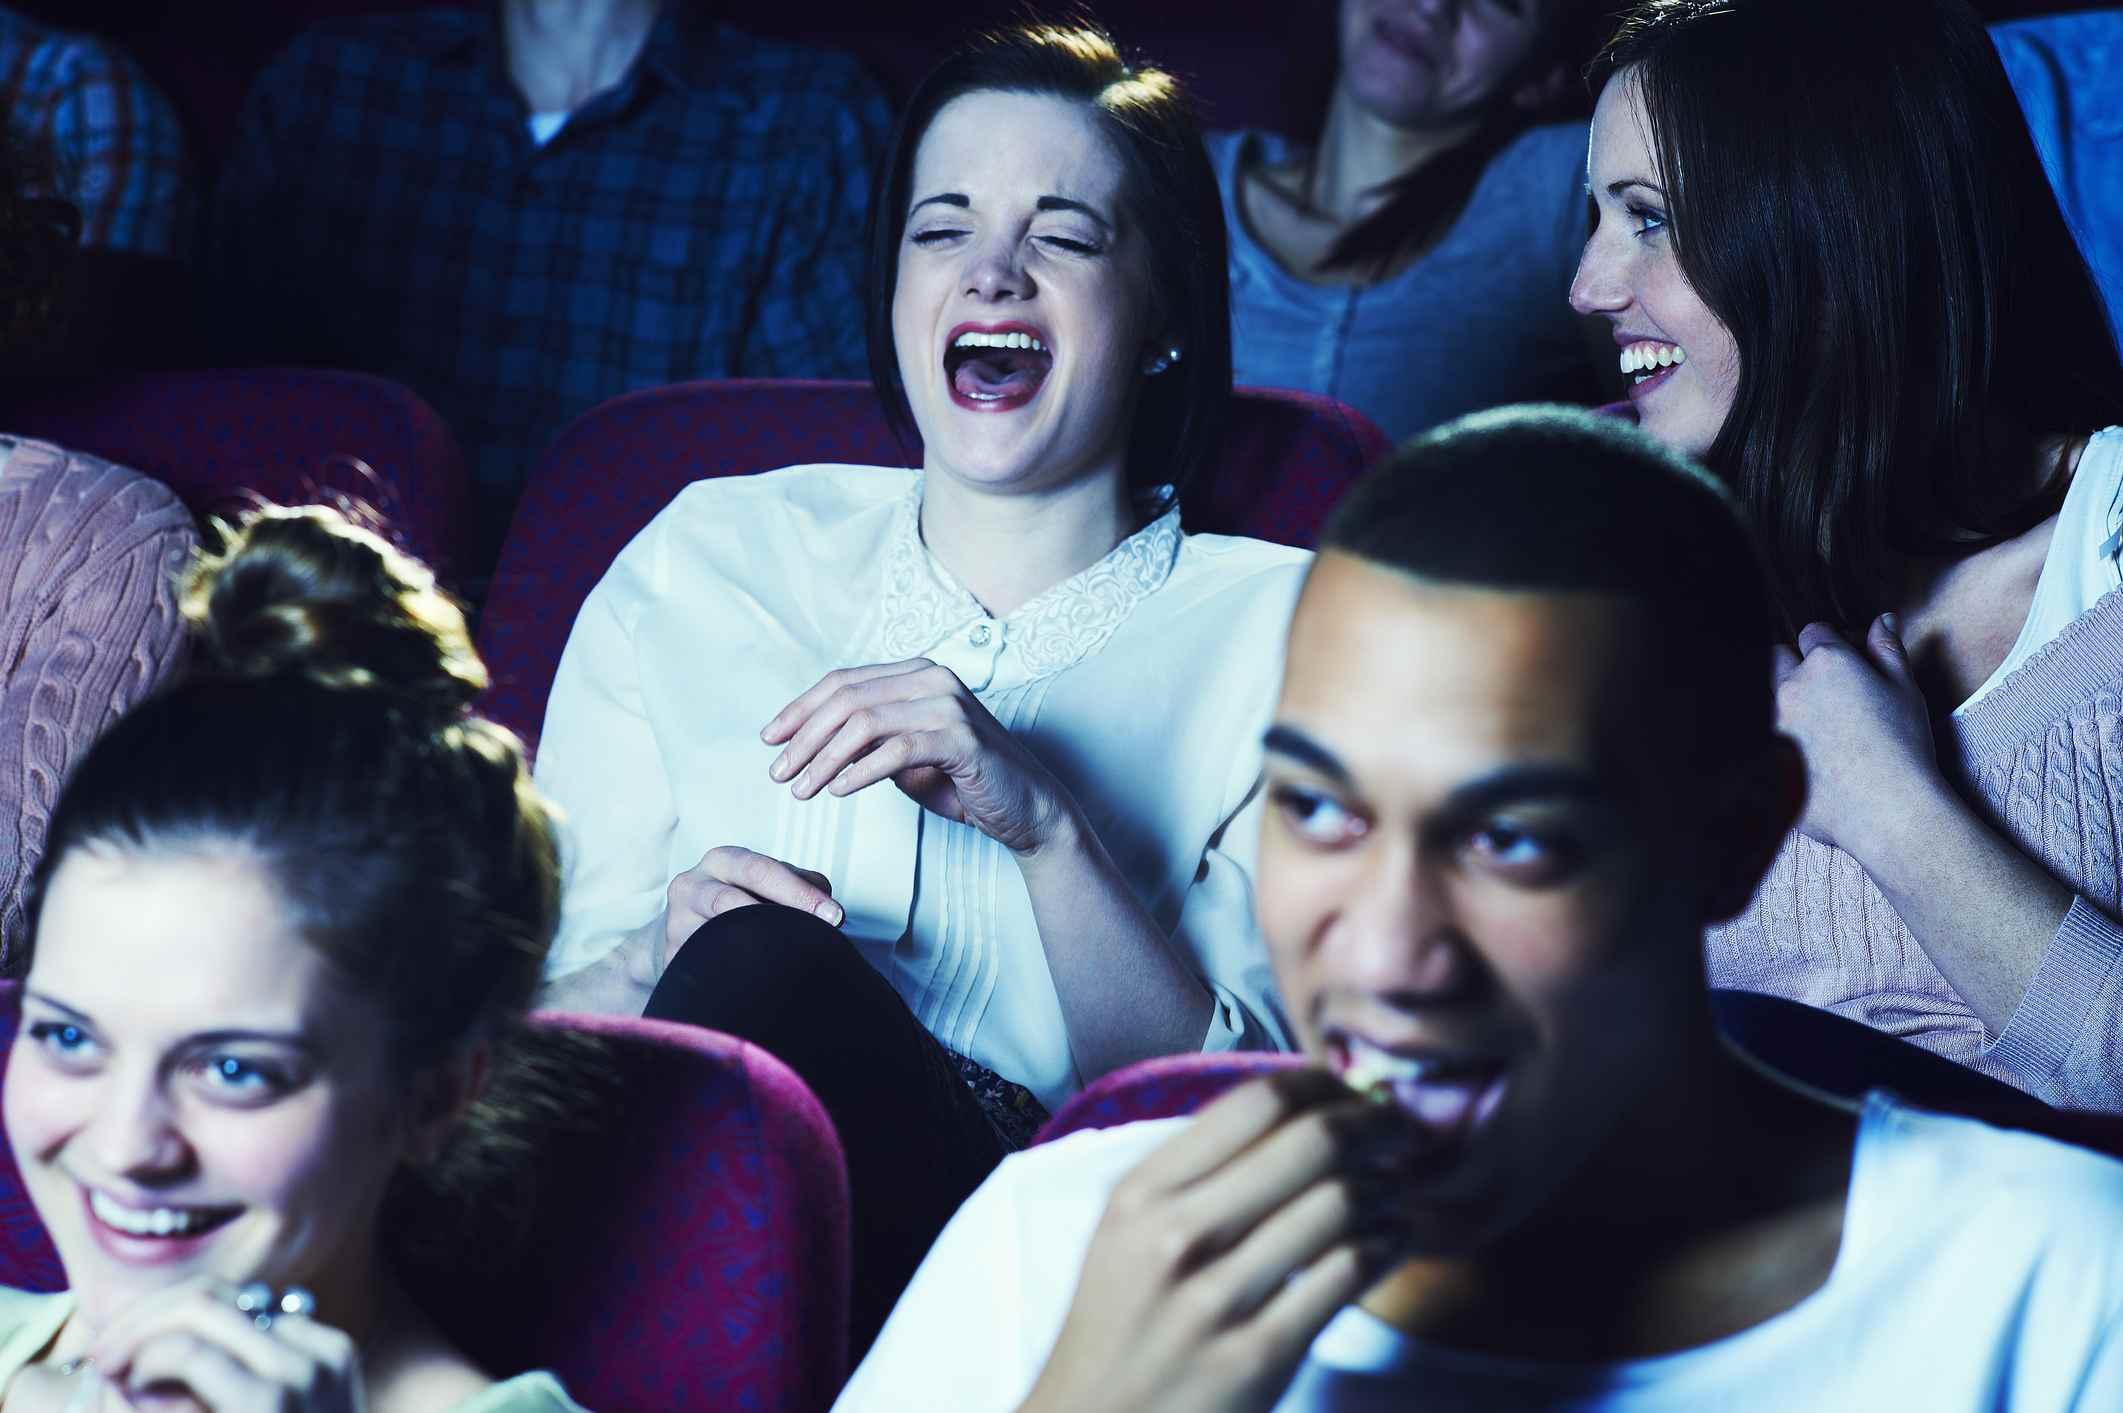 Women laughing in a movie theater.